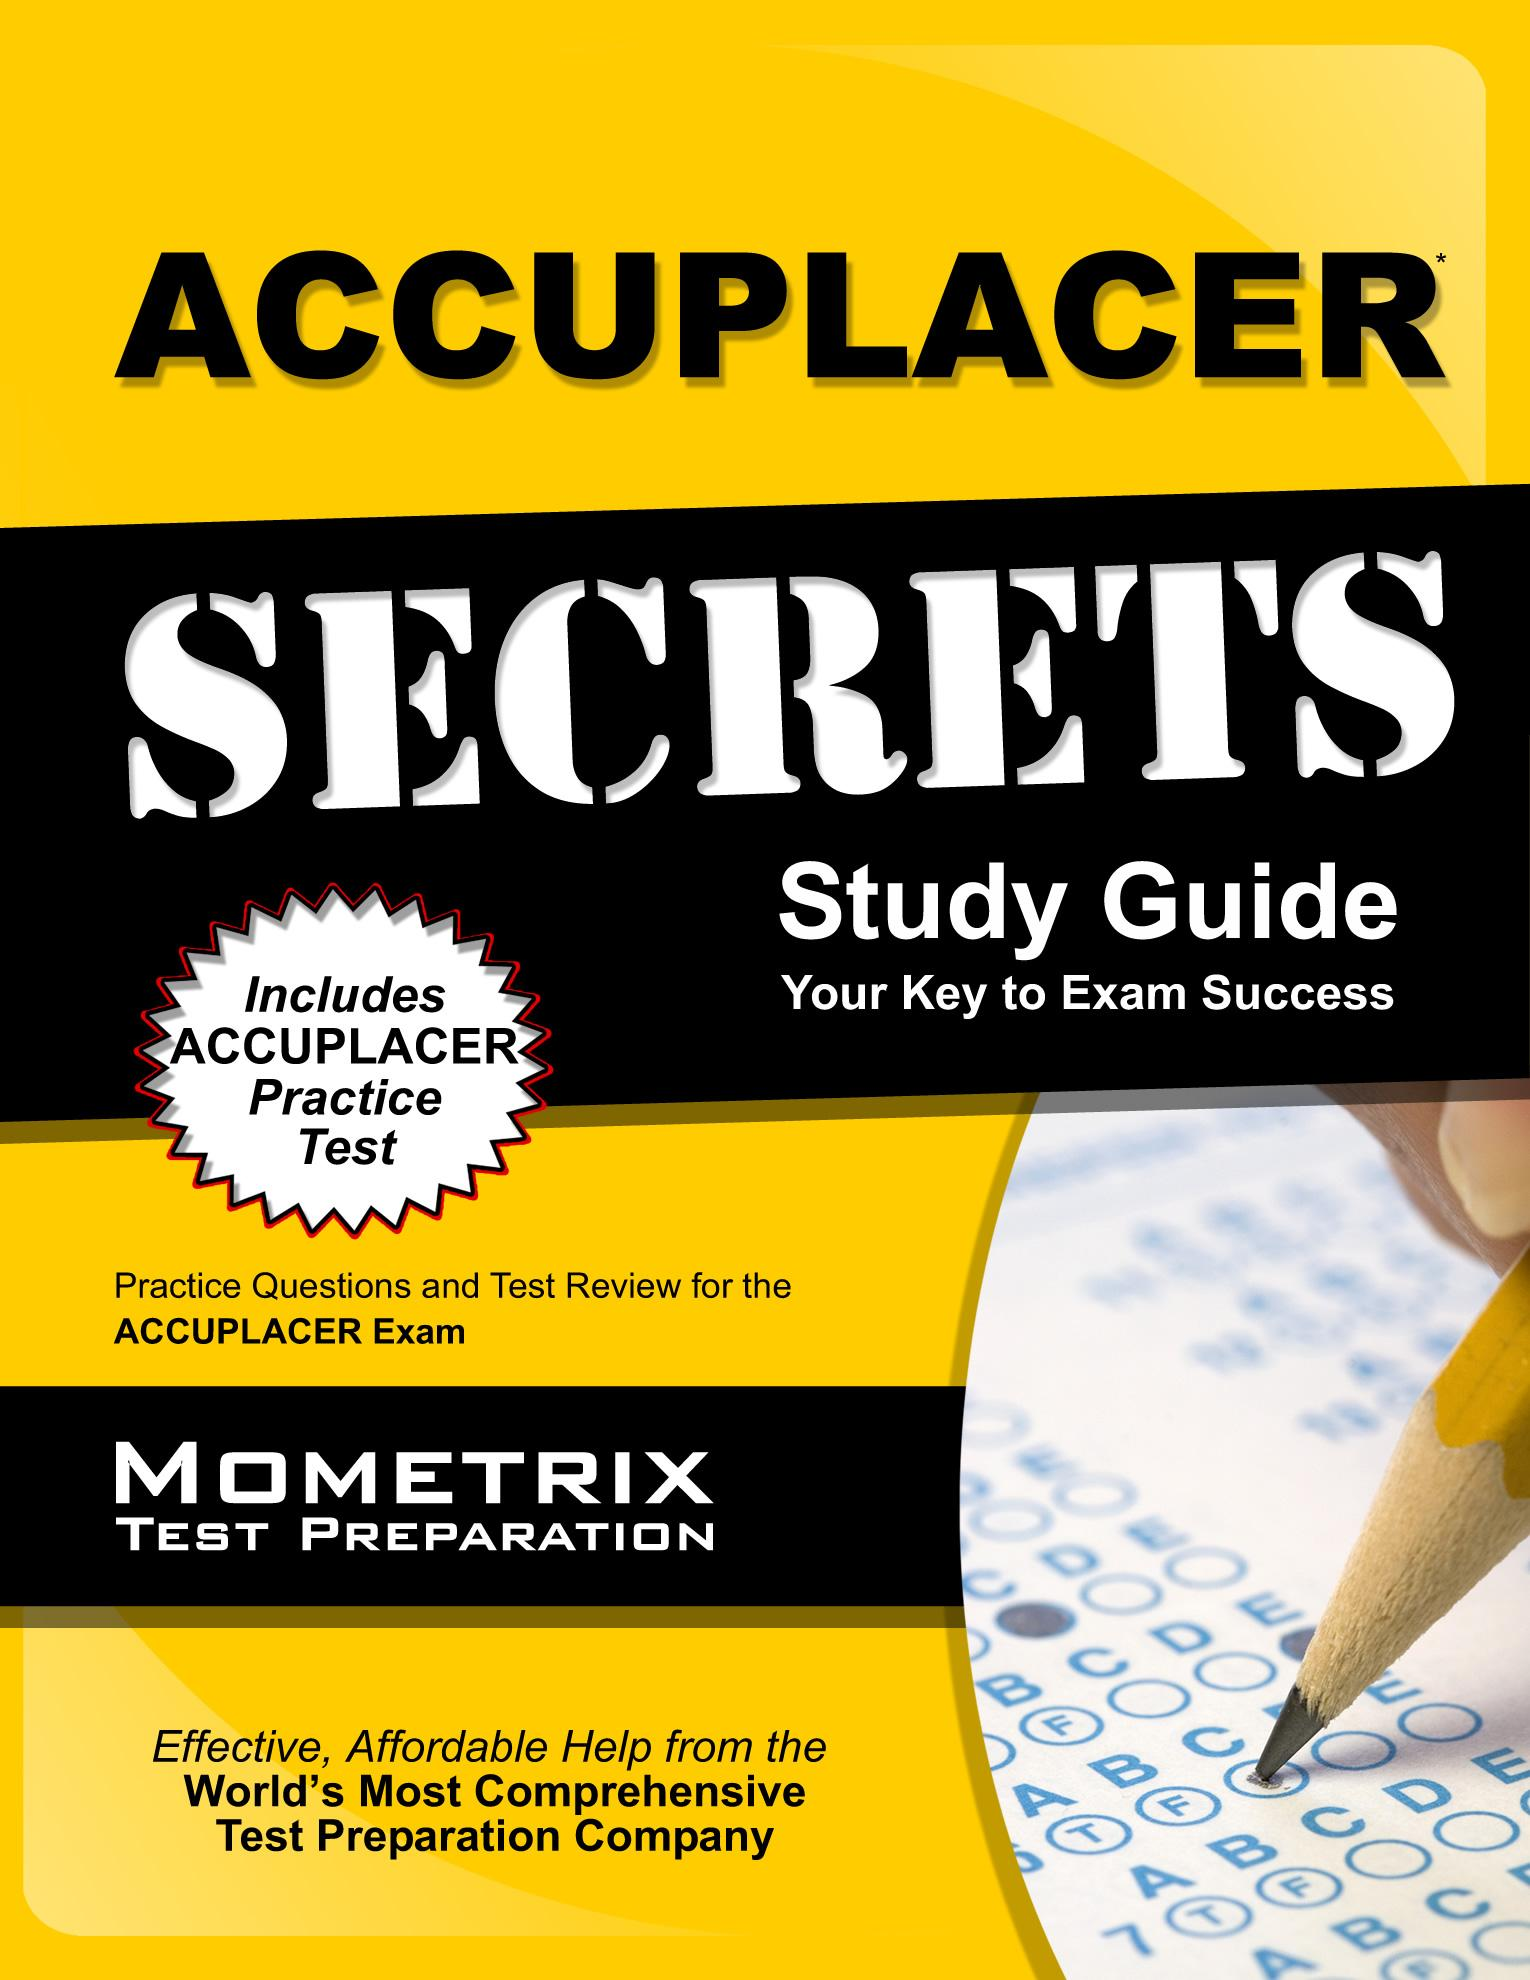 accuplacer secrets study guide practice questions and test review rh walmart com Accuplacer Test Review Elementary Algebra Accuplacer